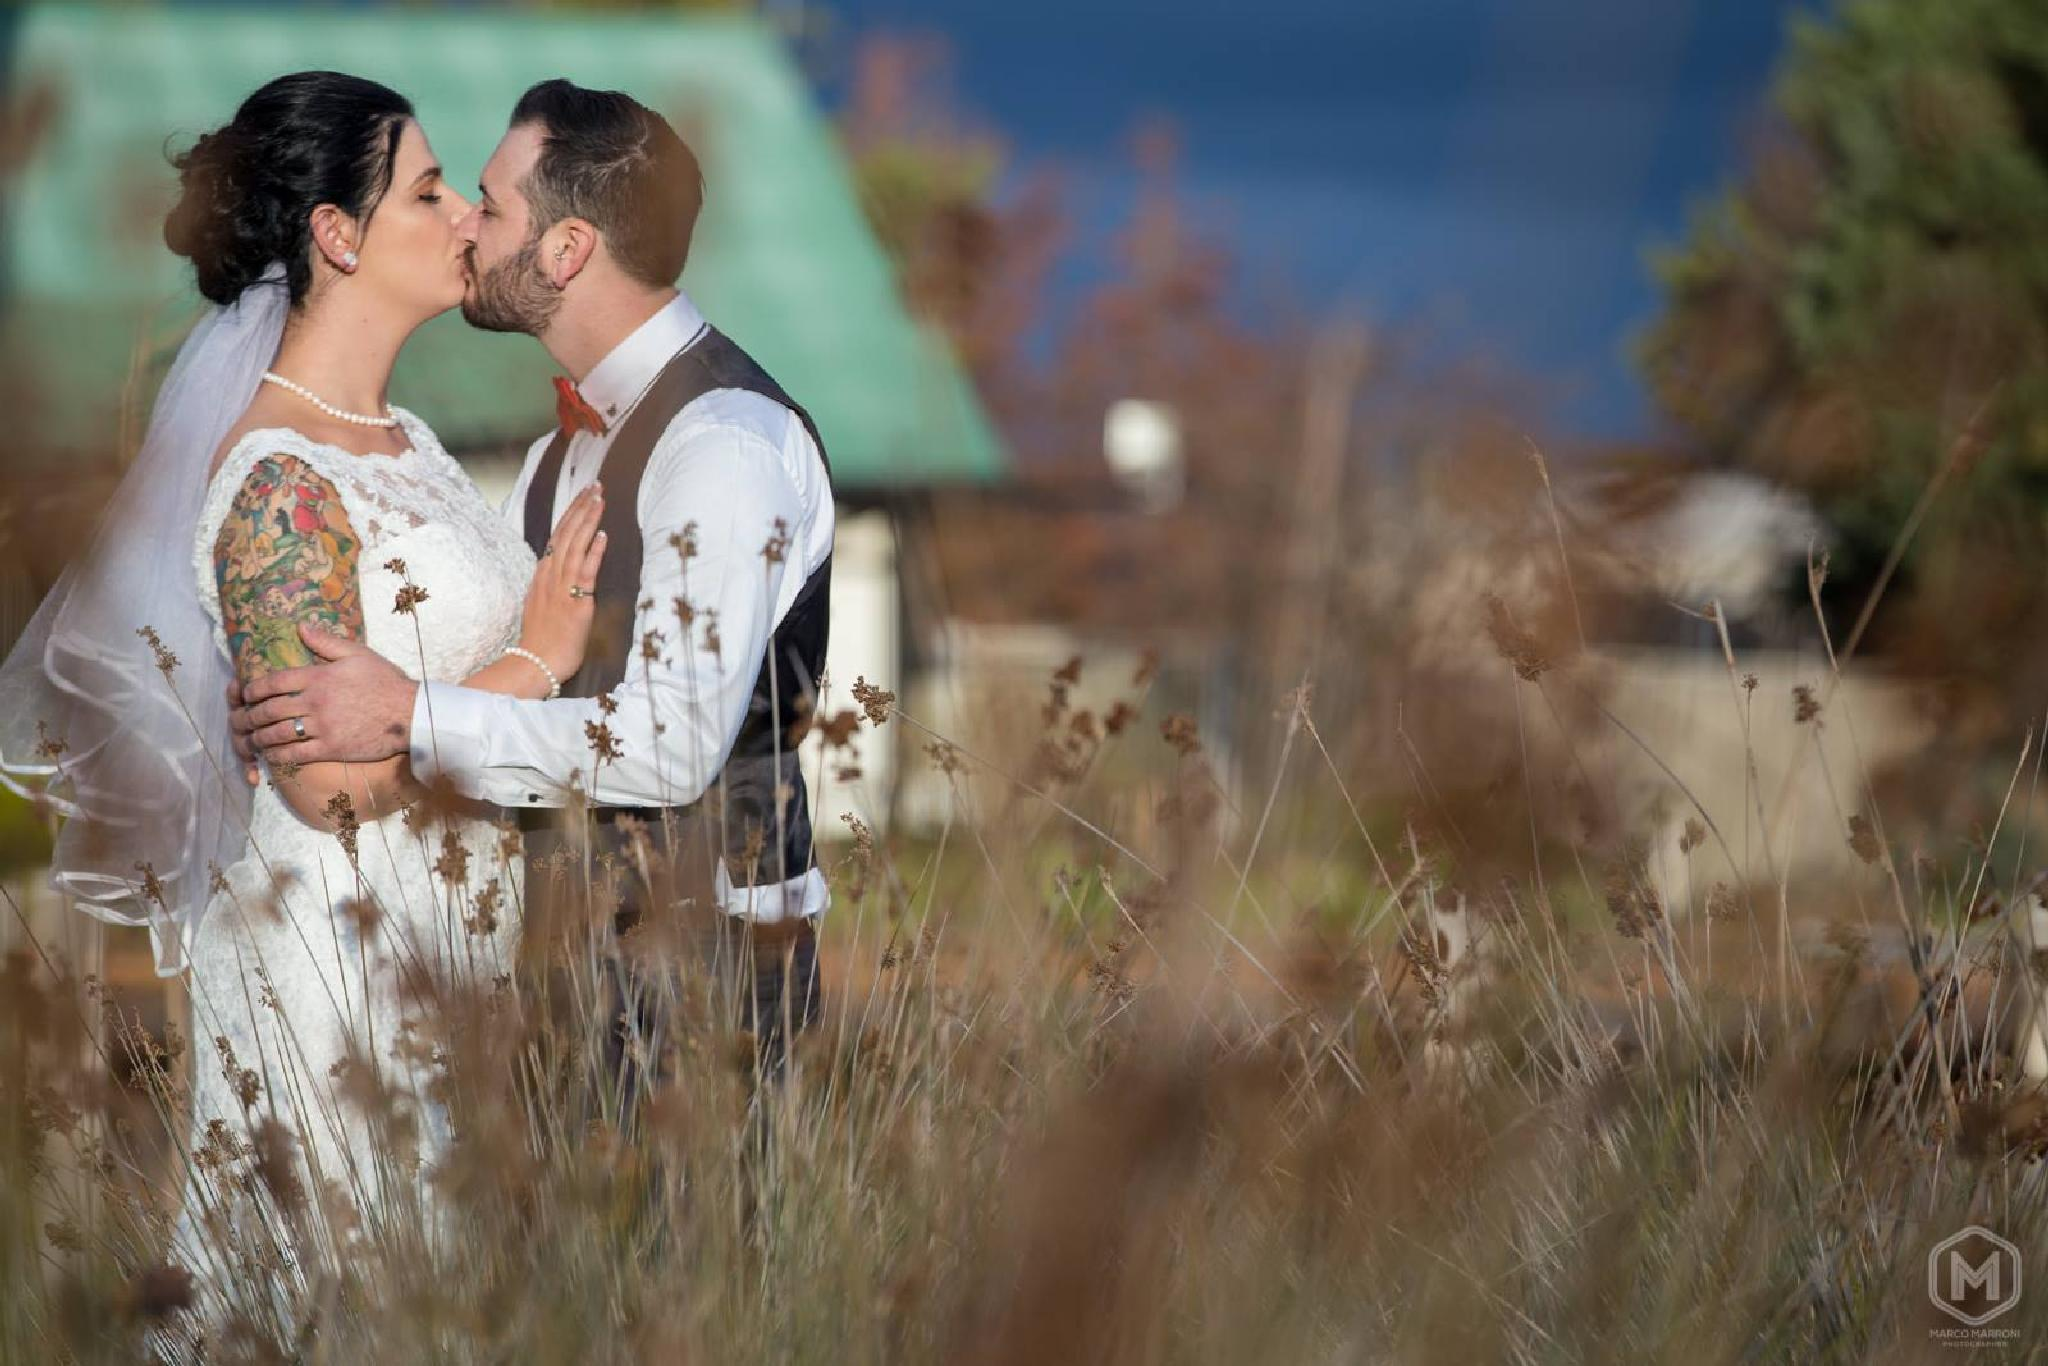 Getting hitched by PhotographyStudioMarroni